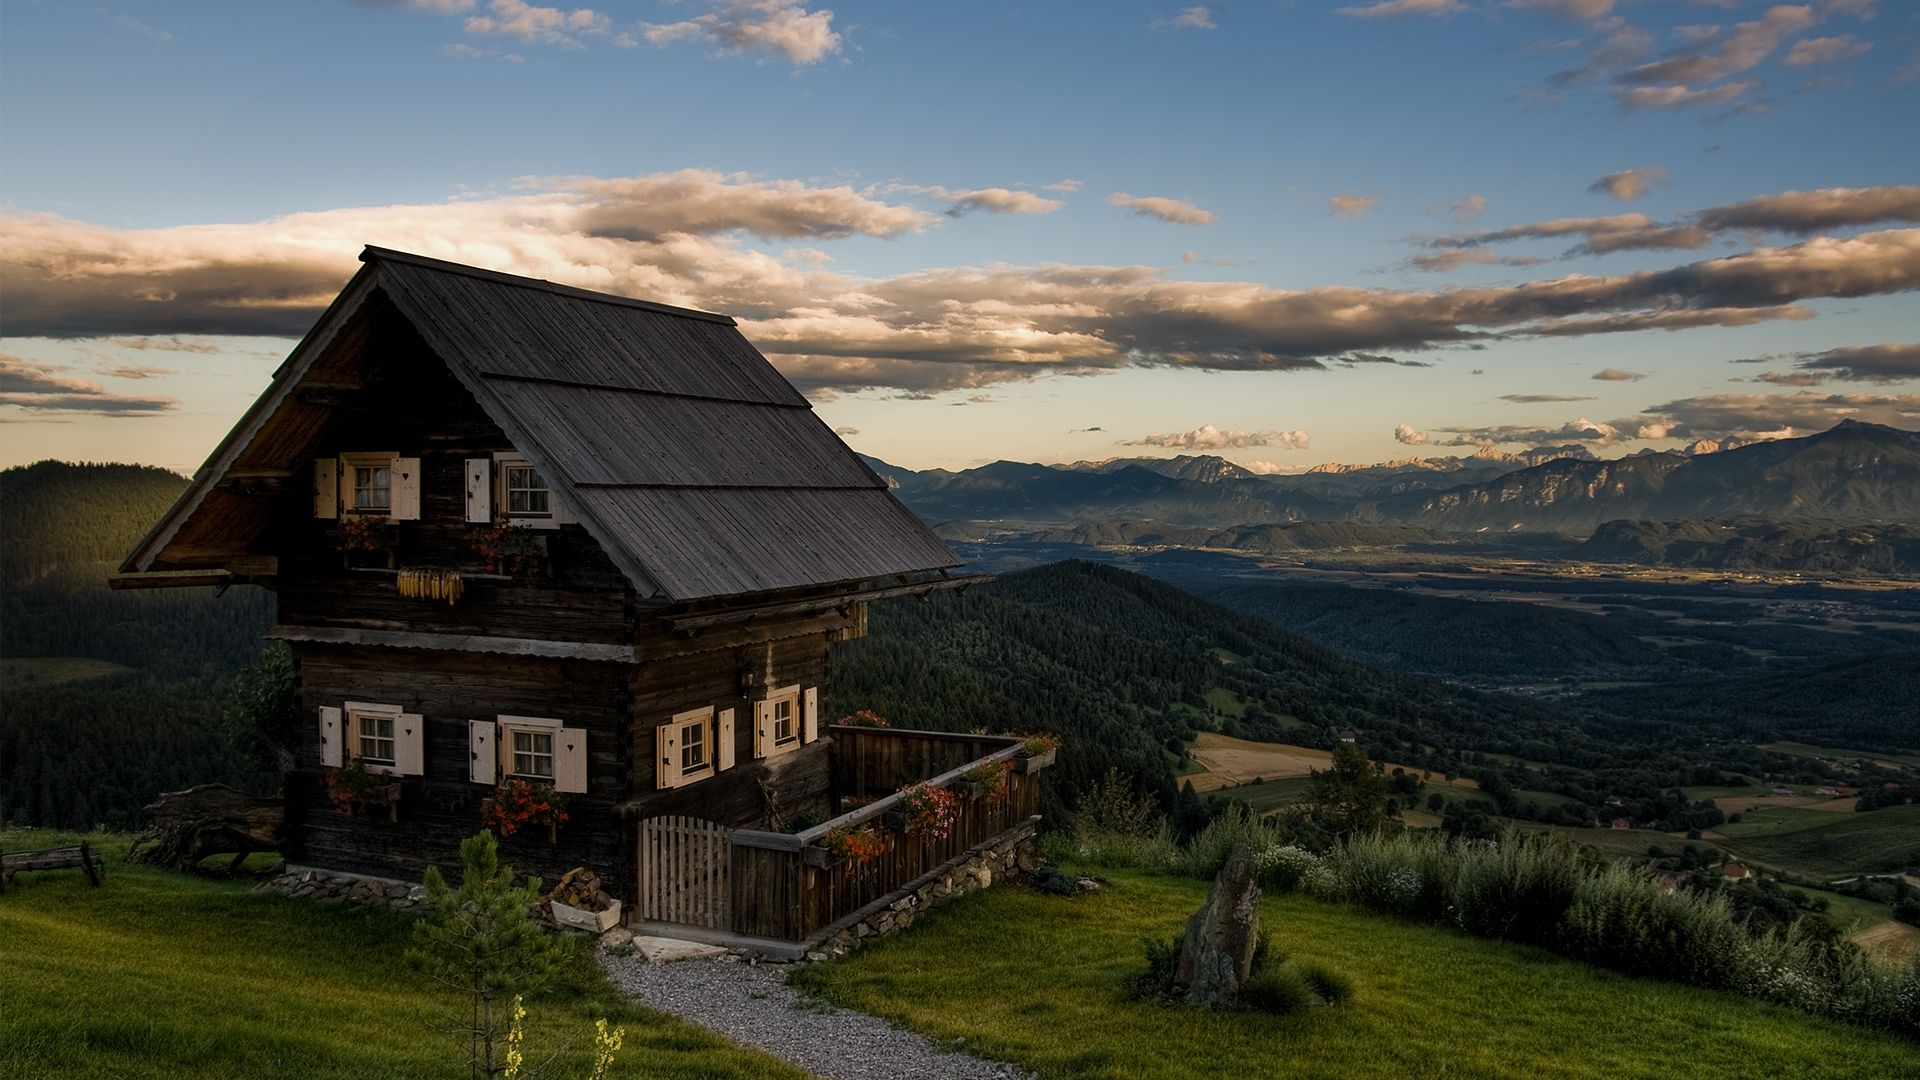 House In The Mountains - Nucdata.com